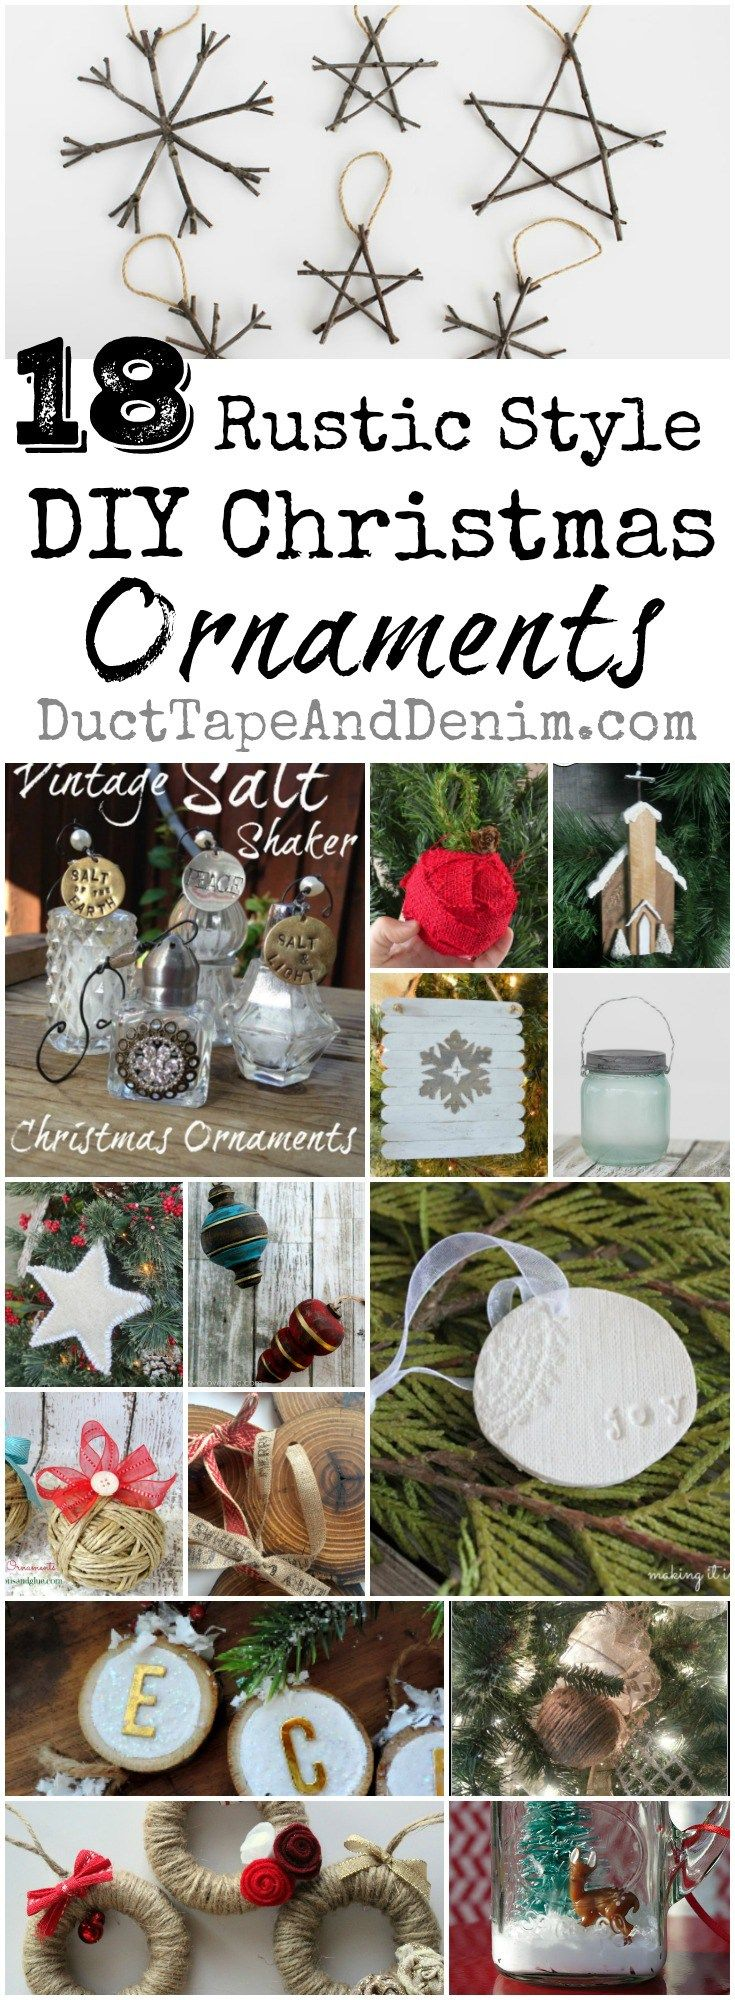 Diy christmas ornaments for newlyweds - 18 Rustic Diy Christmas Ornaments Tutorials Ornament Ideas On Ducttapeanddenim Com